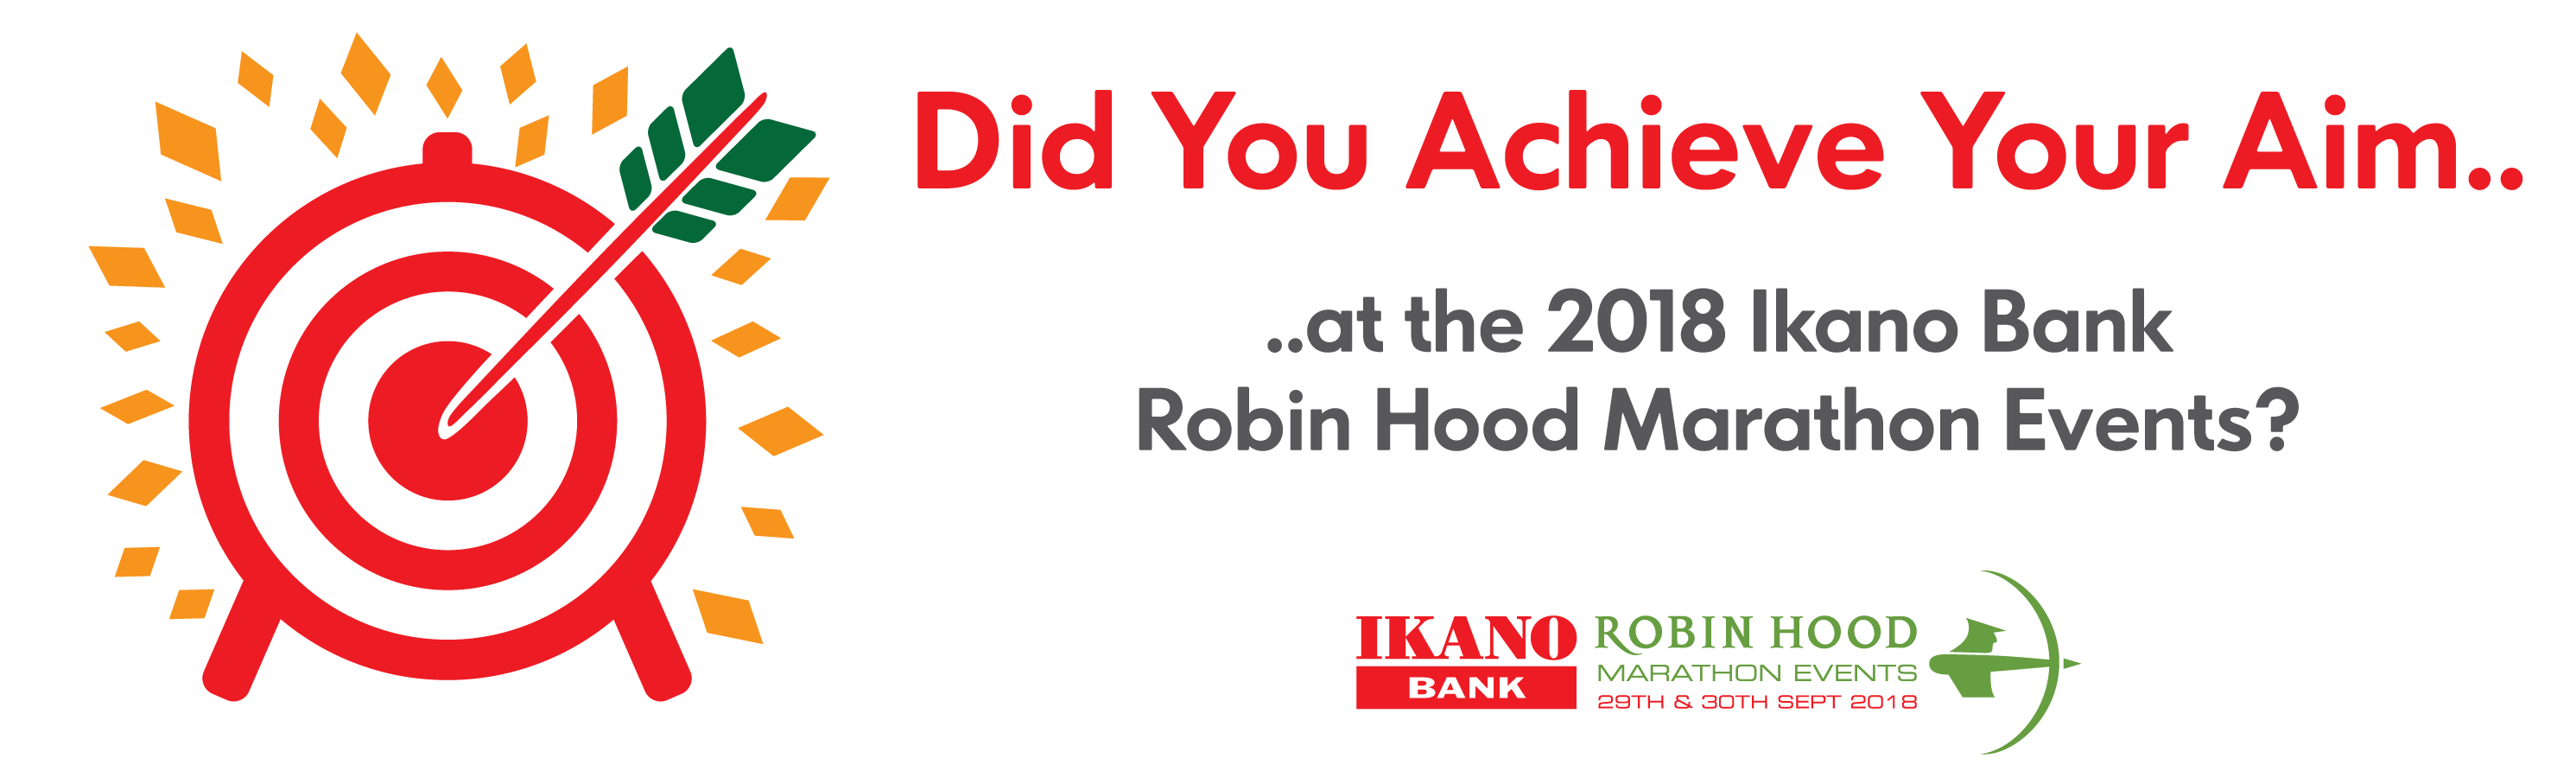 Did you acheive your aim at the 2018 Ikano Bank Robin Hood Marathon events?